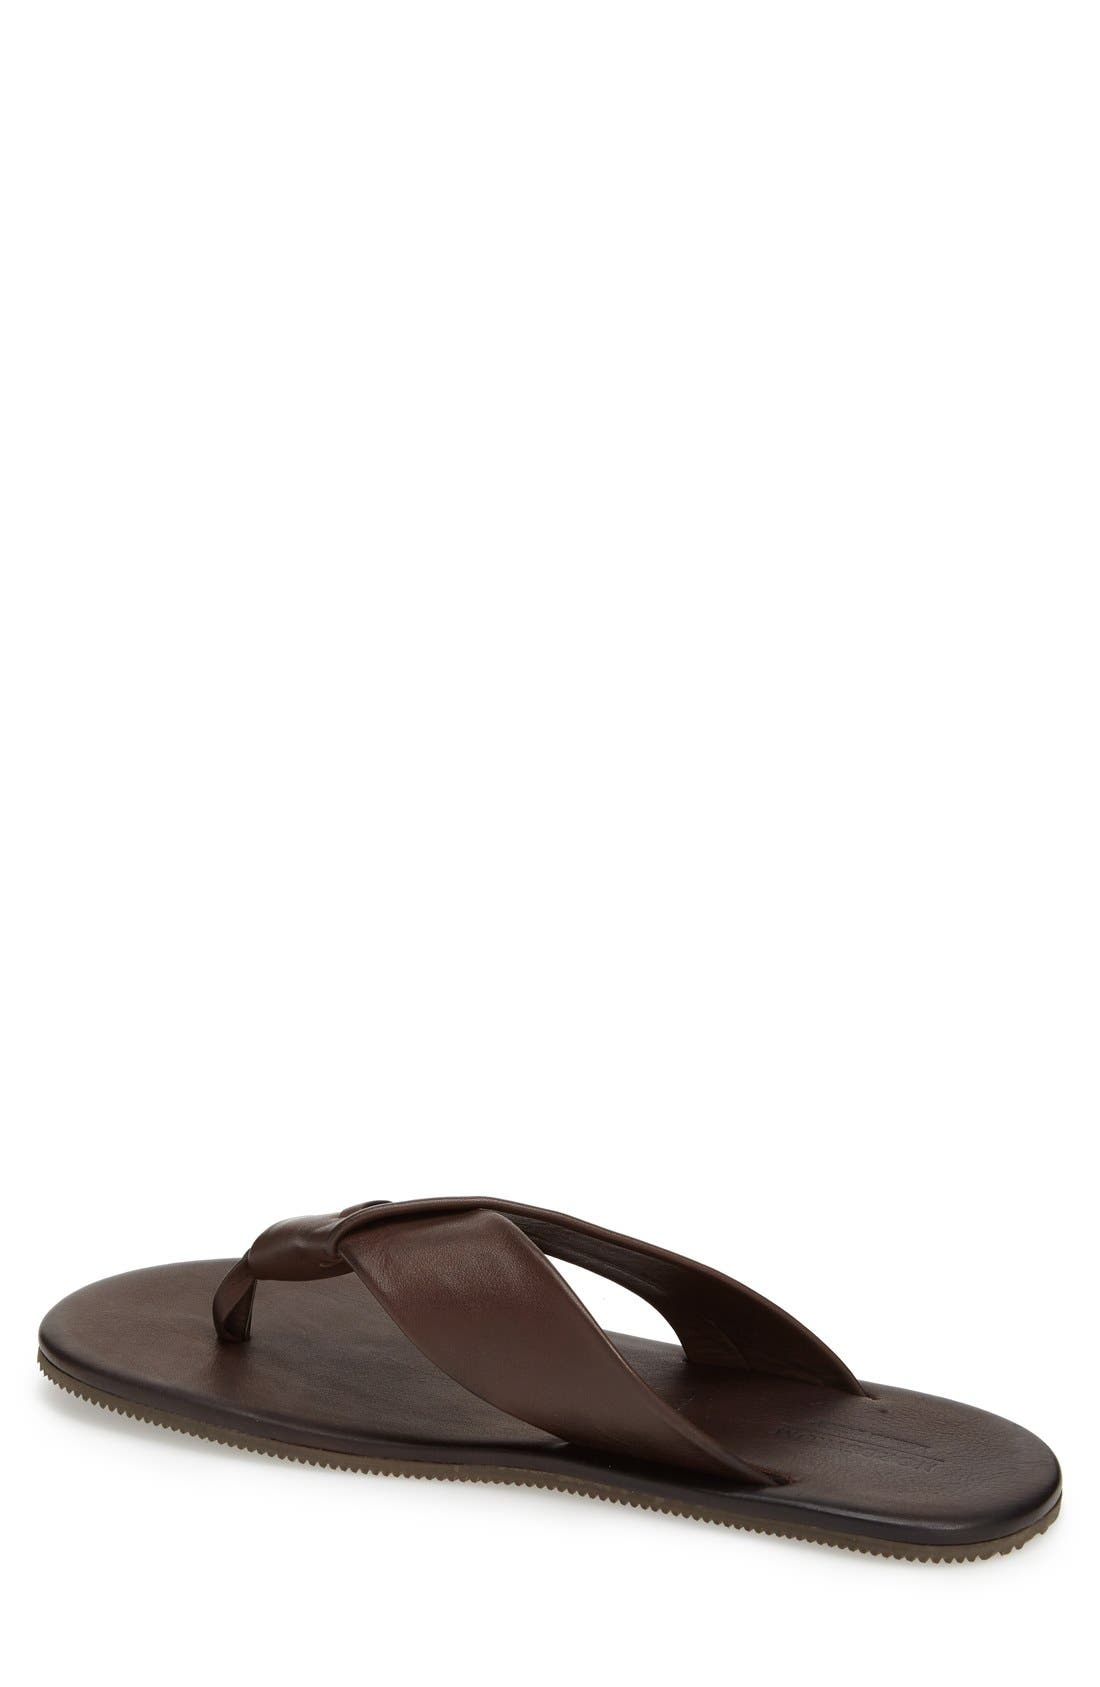 Alternate Image 2  - Nordstrom Men's Shop 'Breeze' Flip Flop (Men)